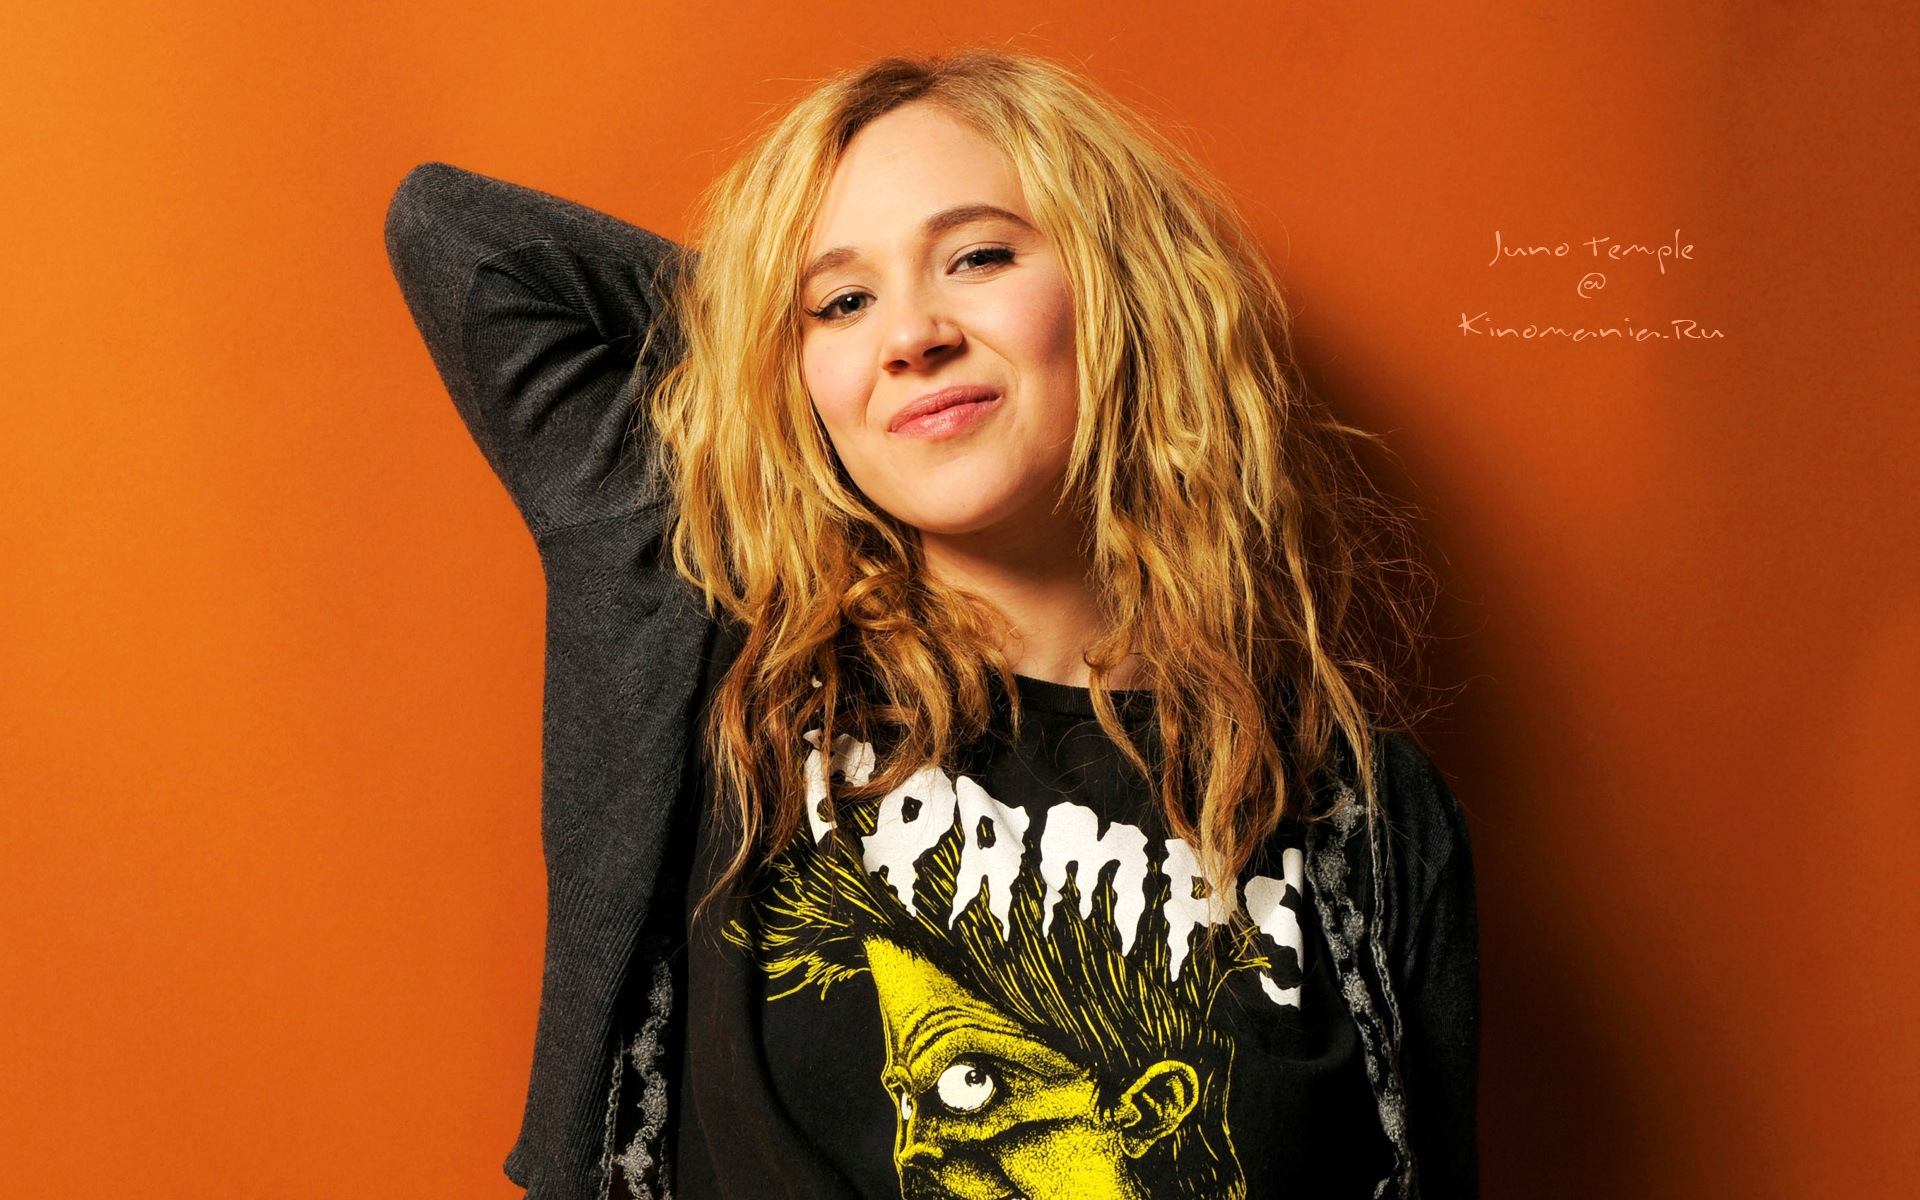 juno temple hd wallpapers free download